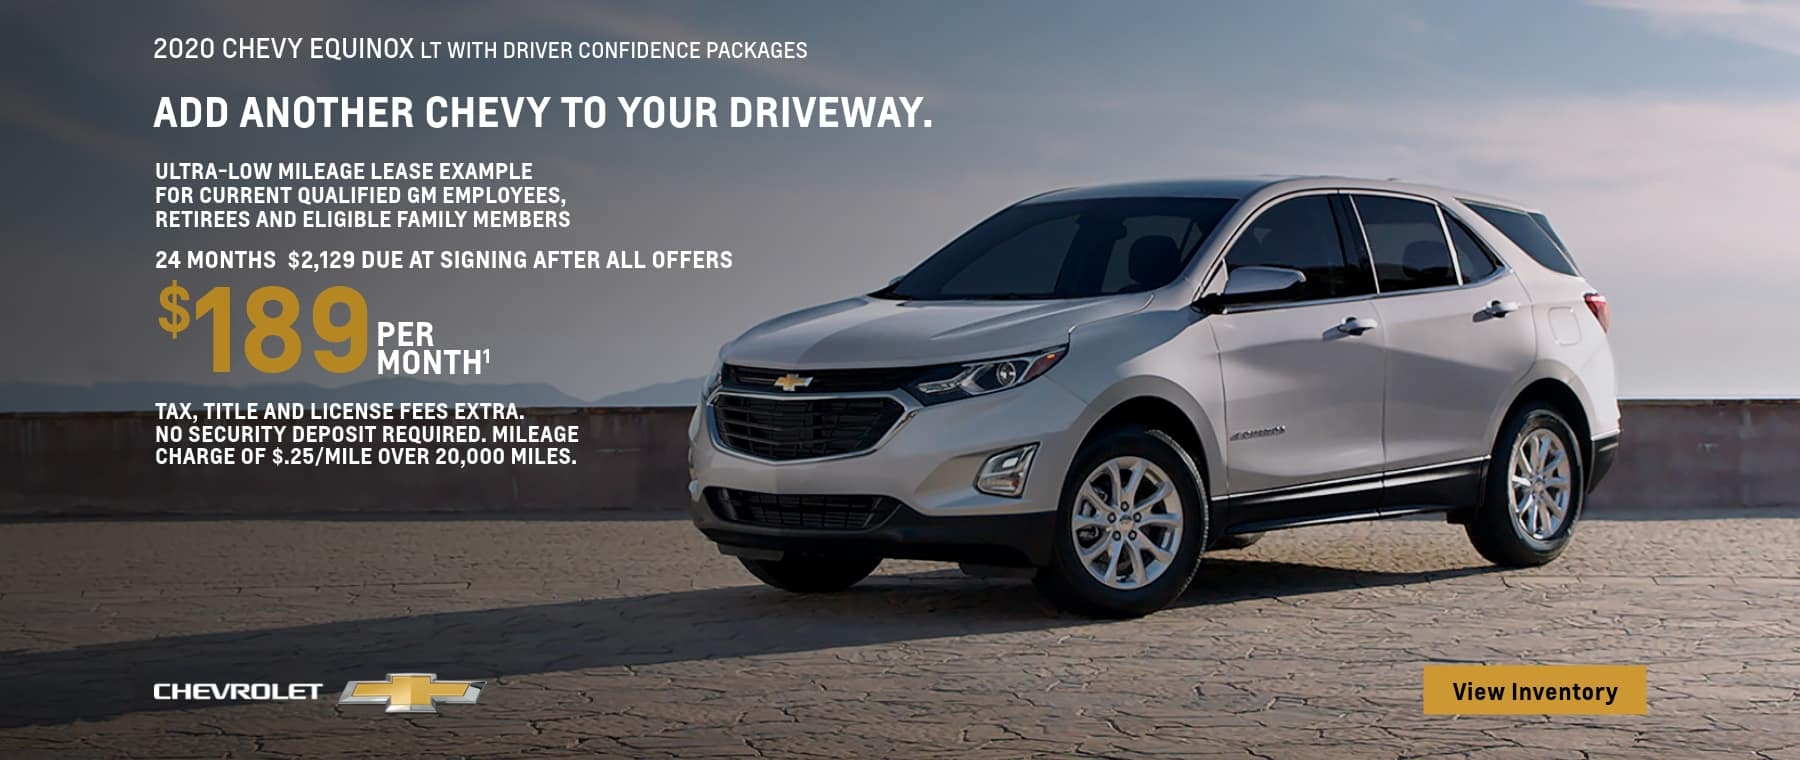 2020 Equinox LT FWD Ultra-Low Mileage Lease Examples for Qualified Lessees $189 per month.